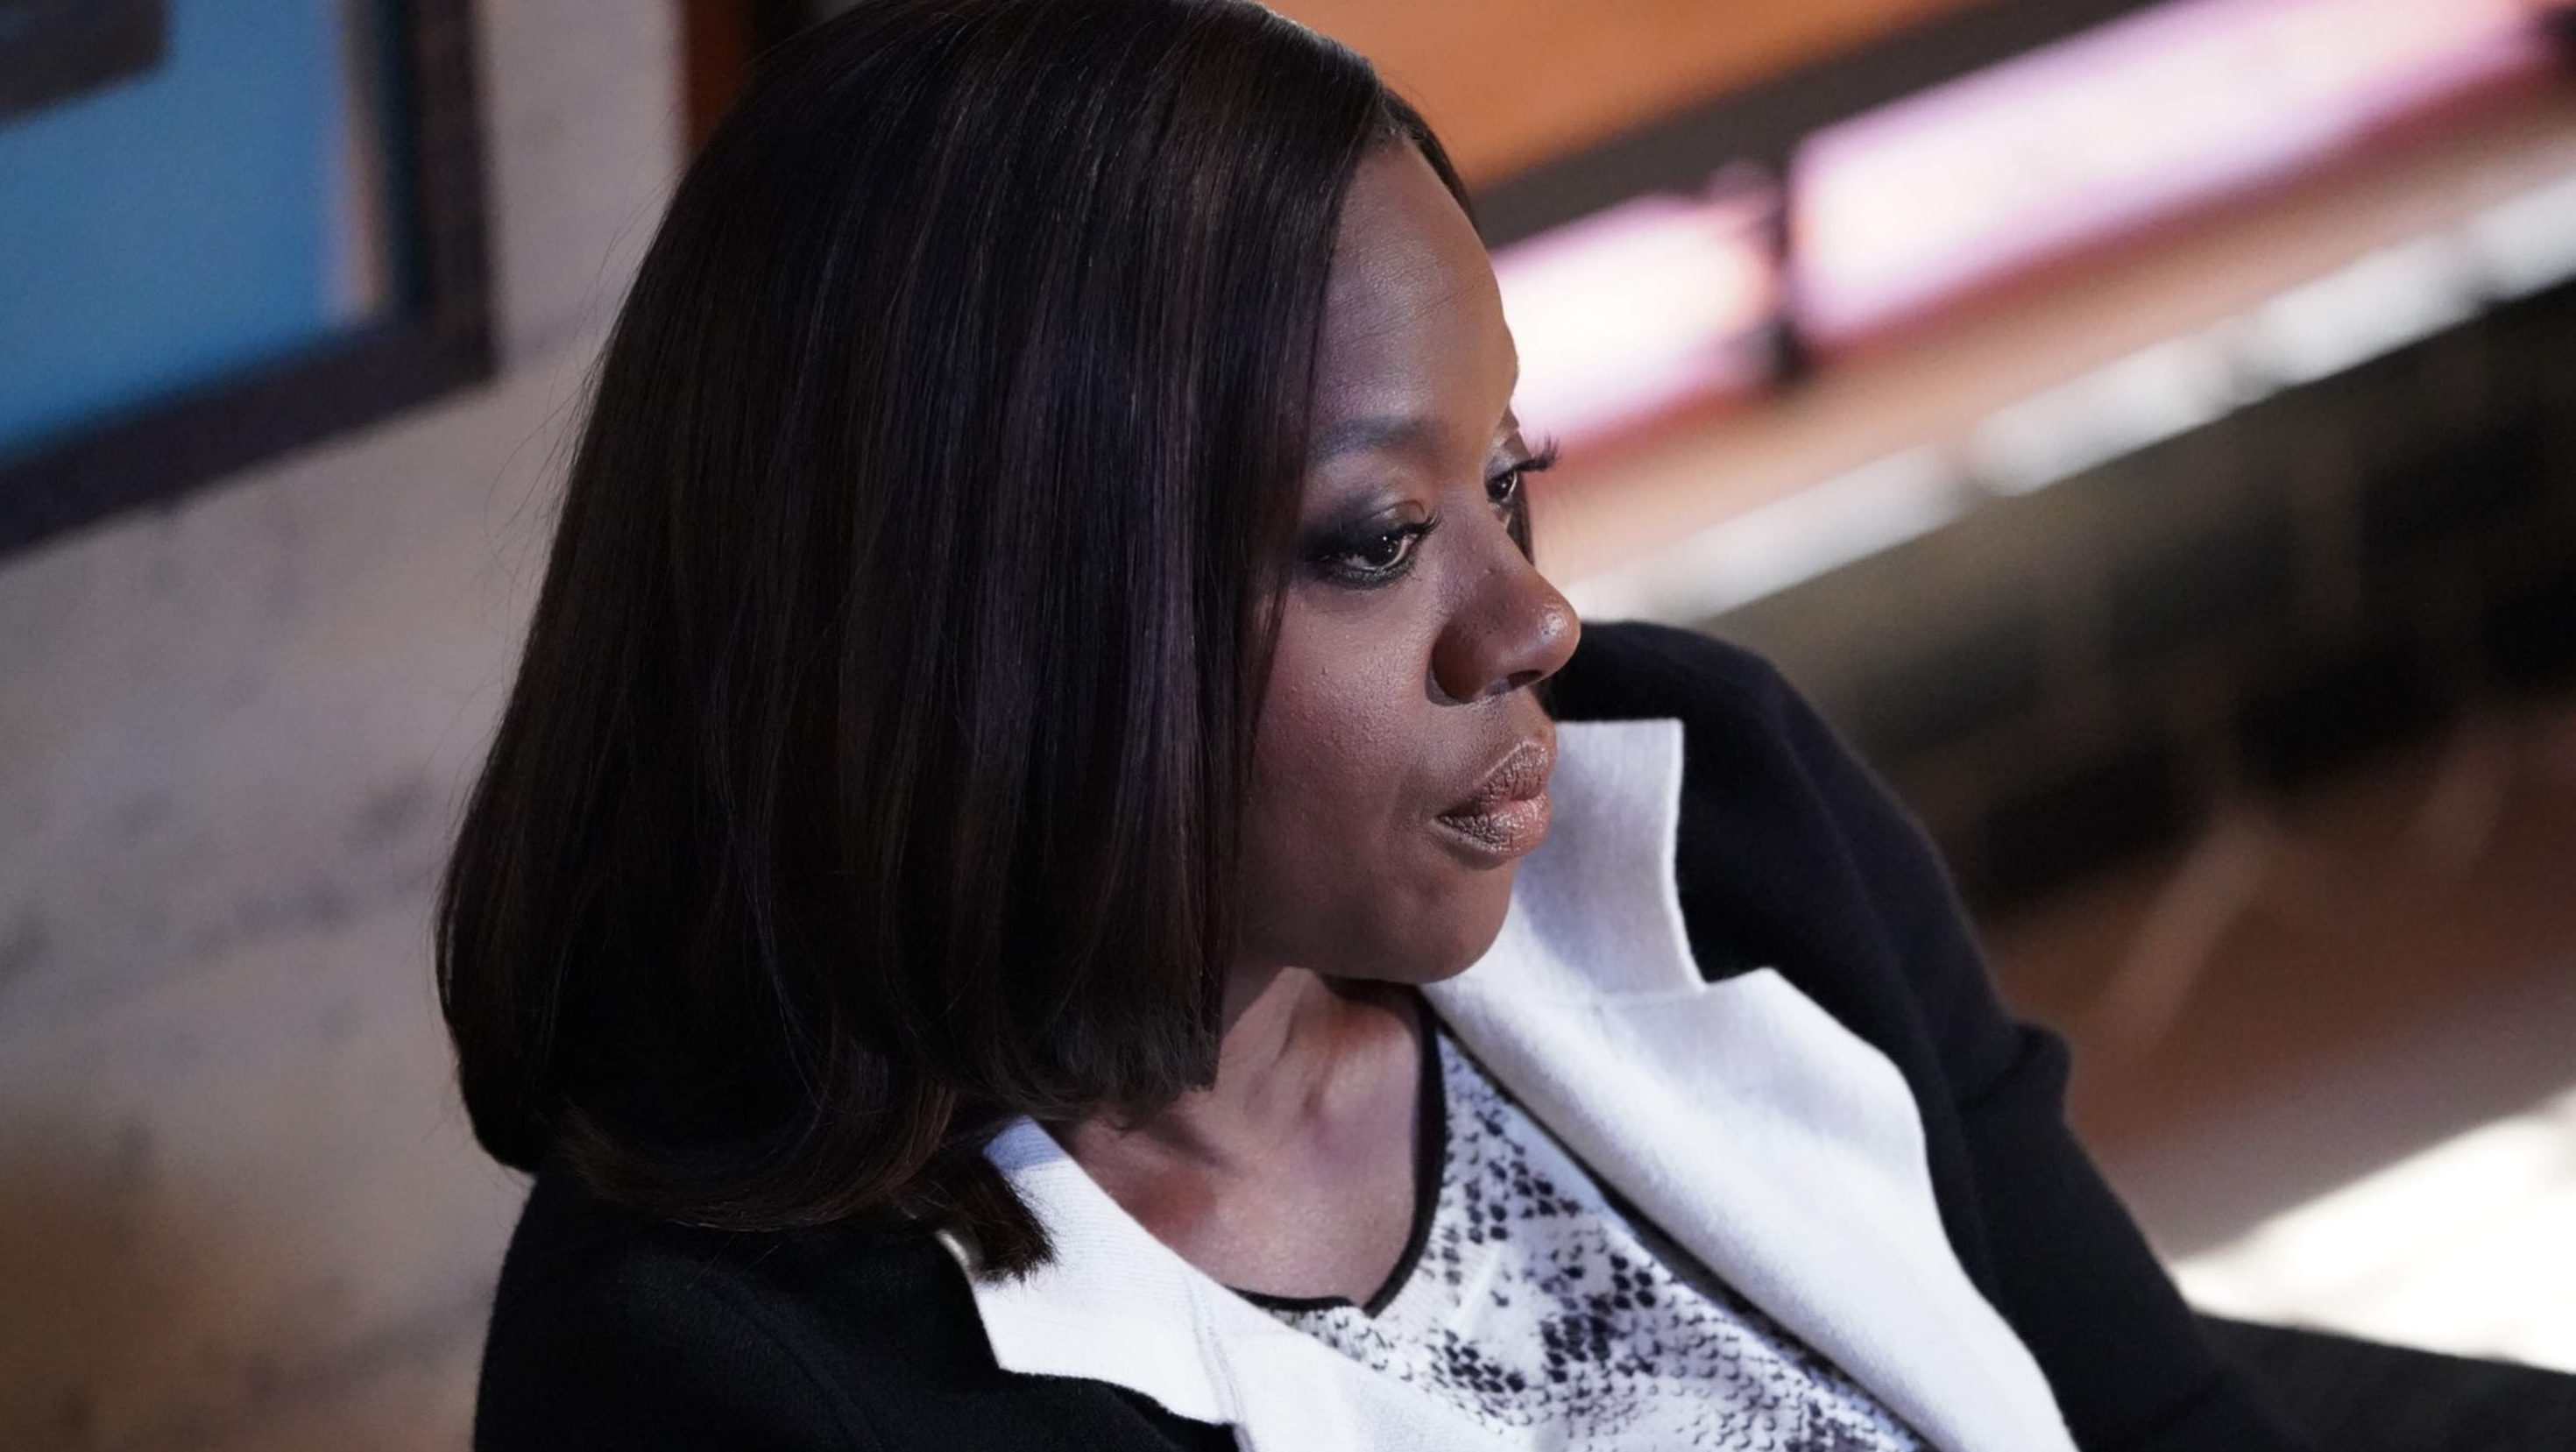 how to get away with murder when will the show return, how to get away with murder return date